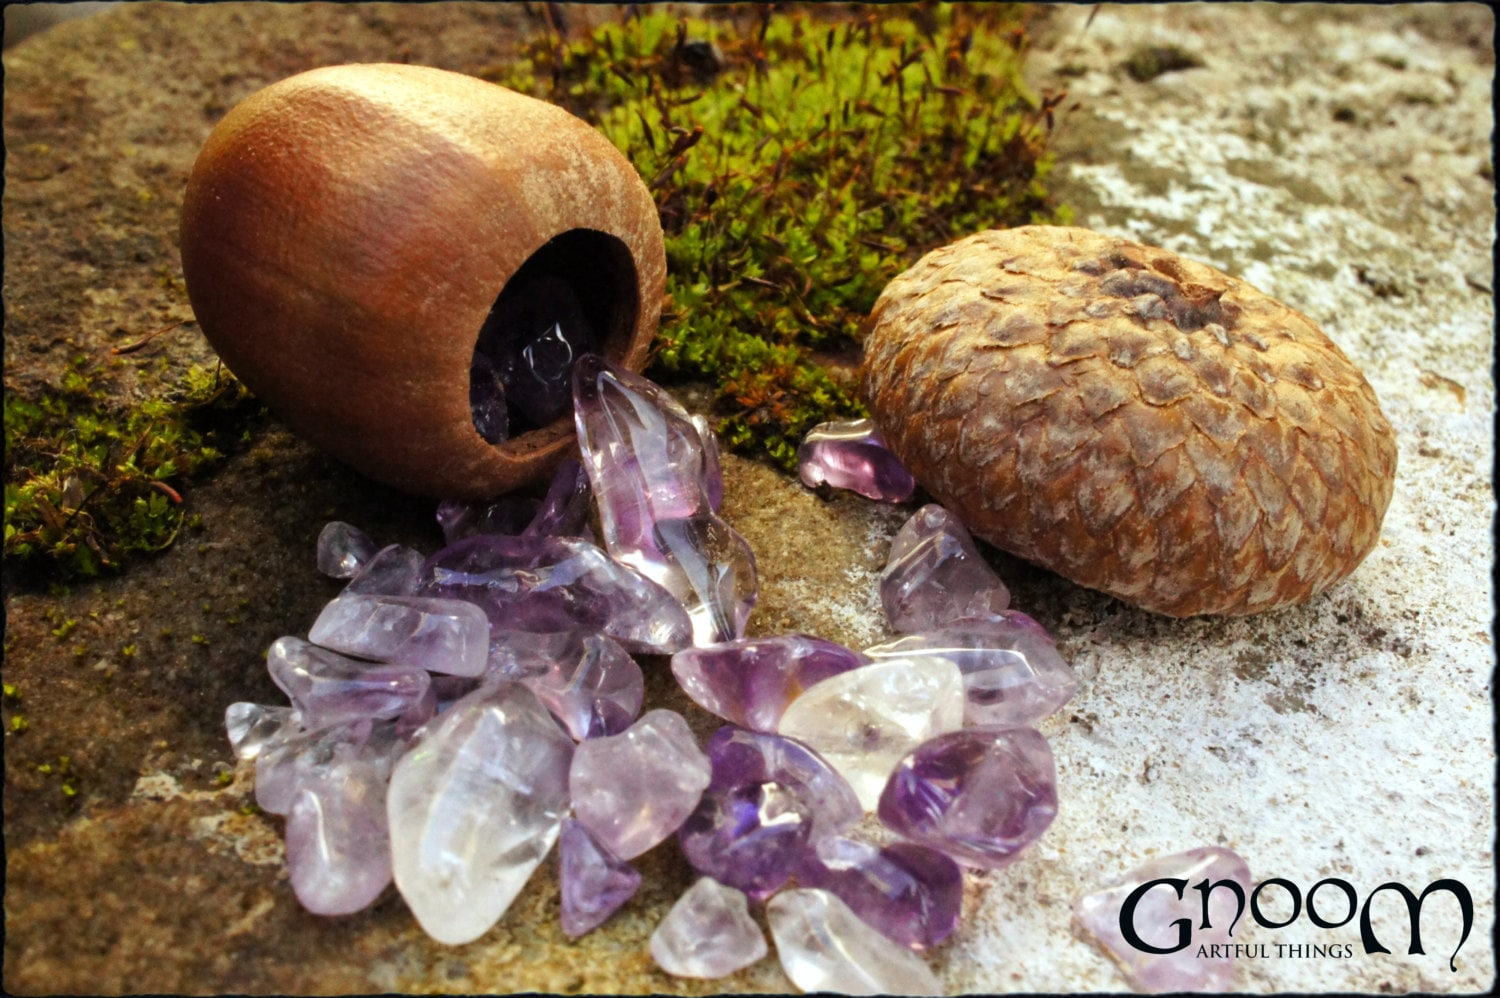 Acorn Wish Box Pendant - A Gift from the Gnoom Forest - GnoomArtfulThings